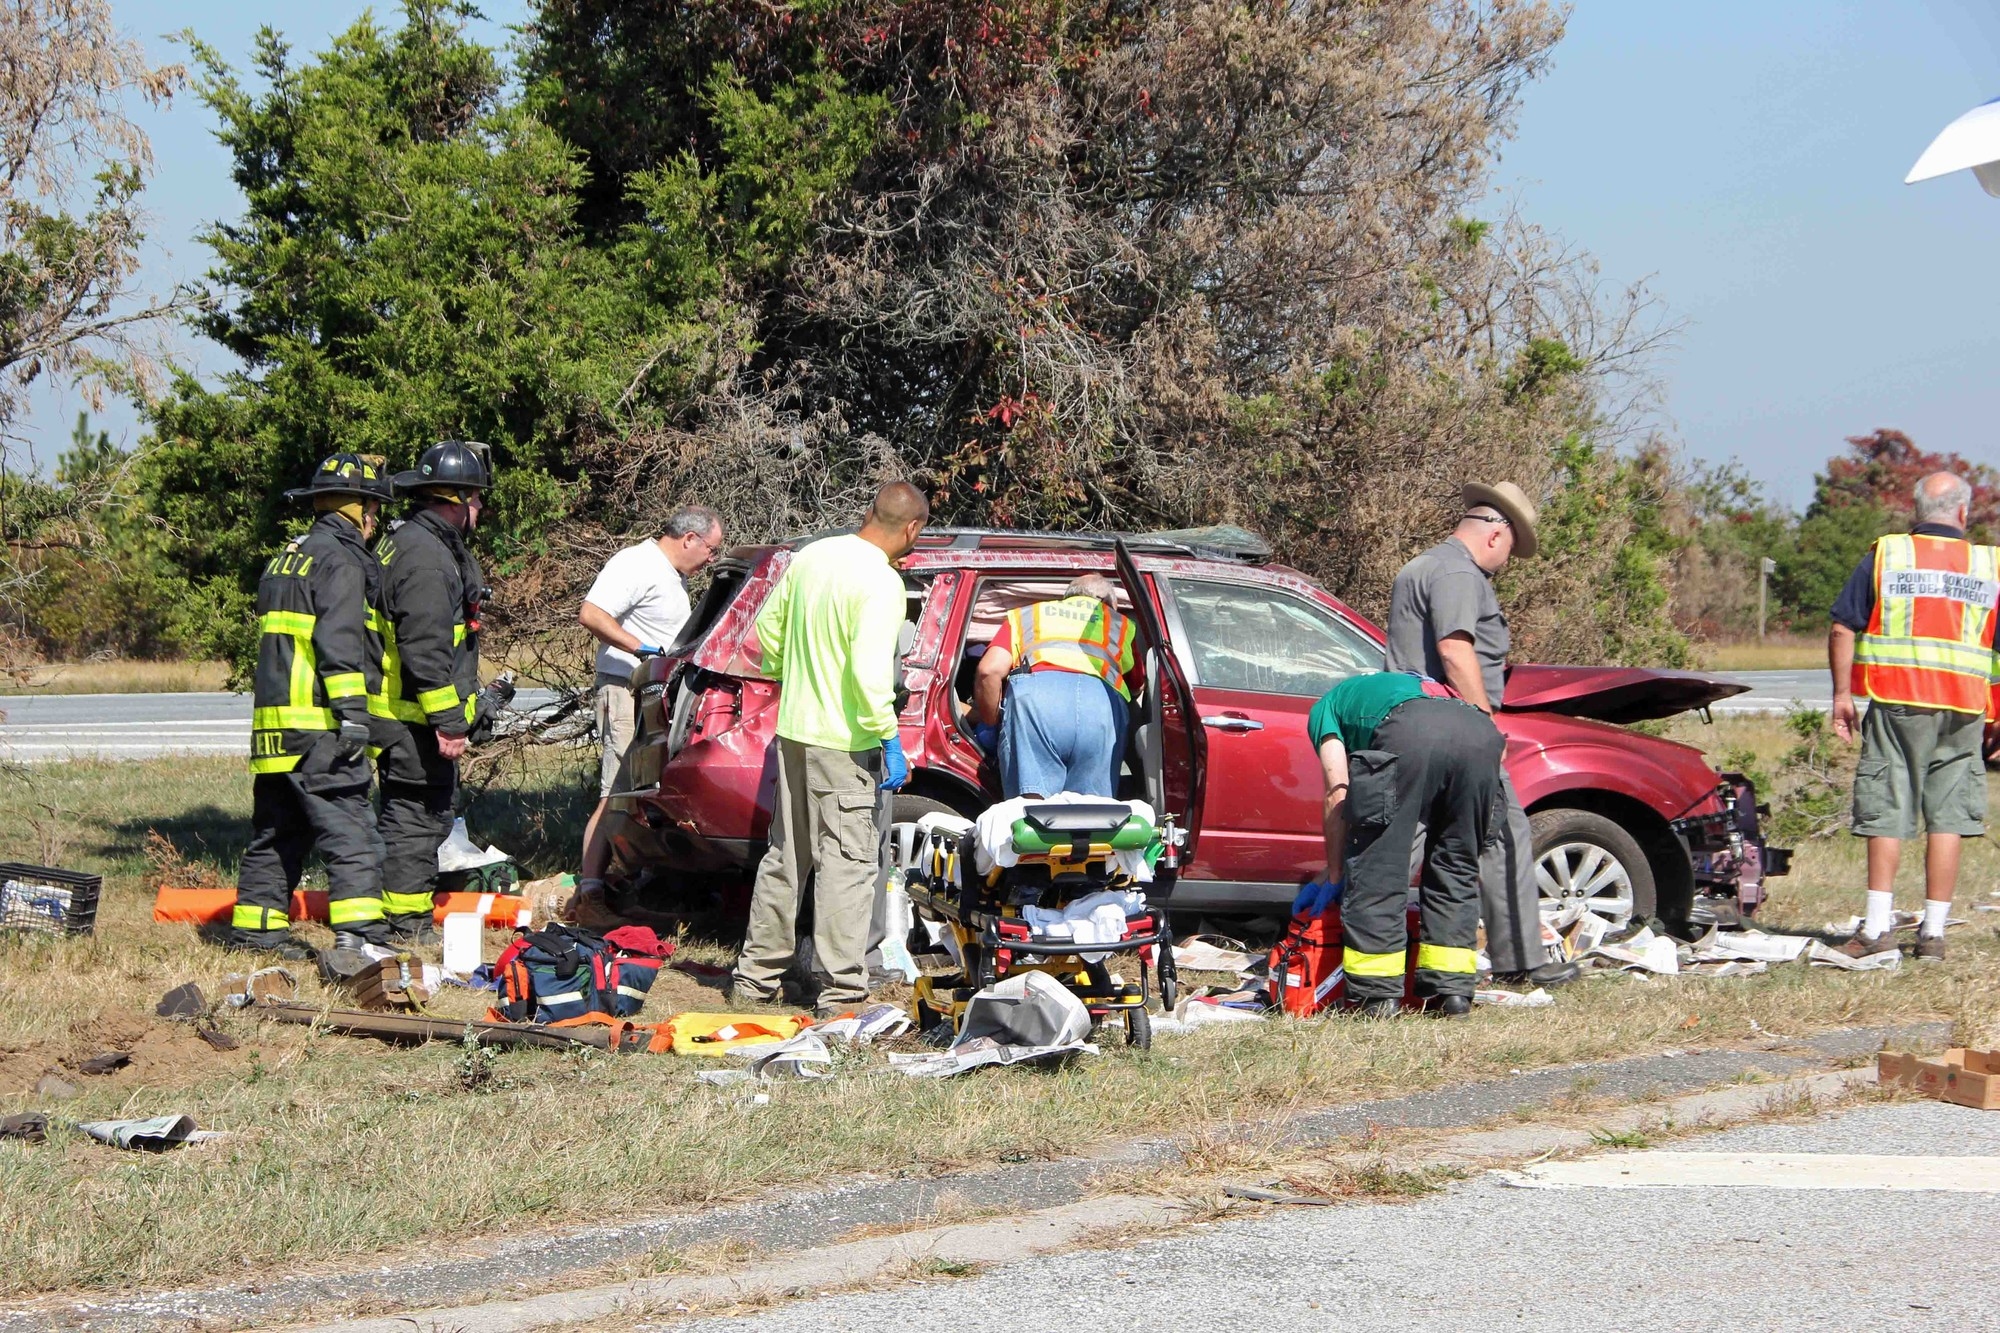 The driver sustained serious injuries, fire officials said.